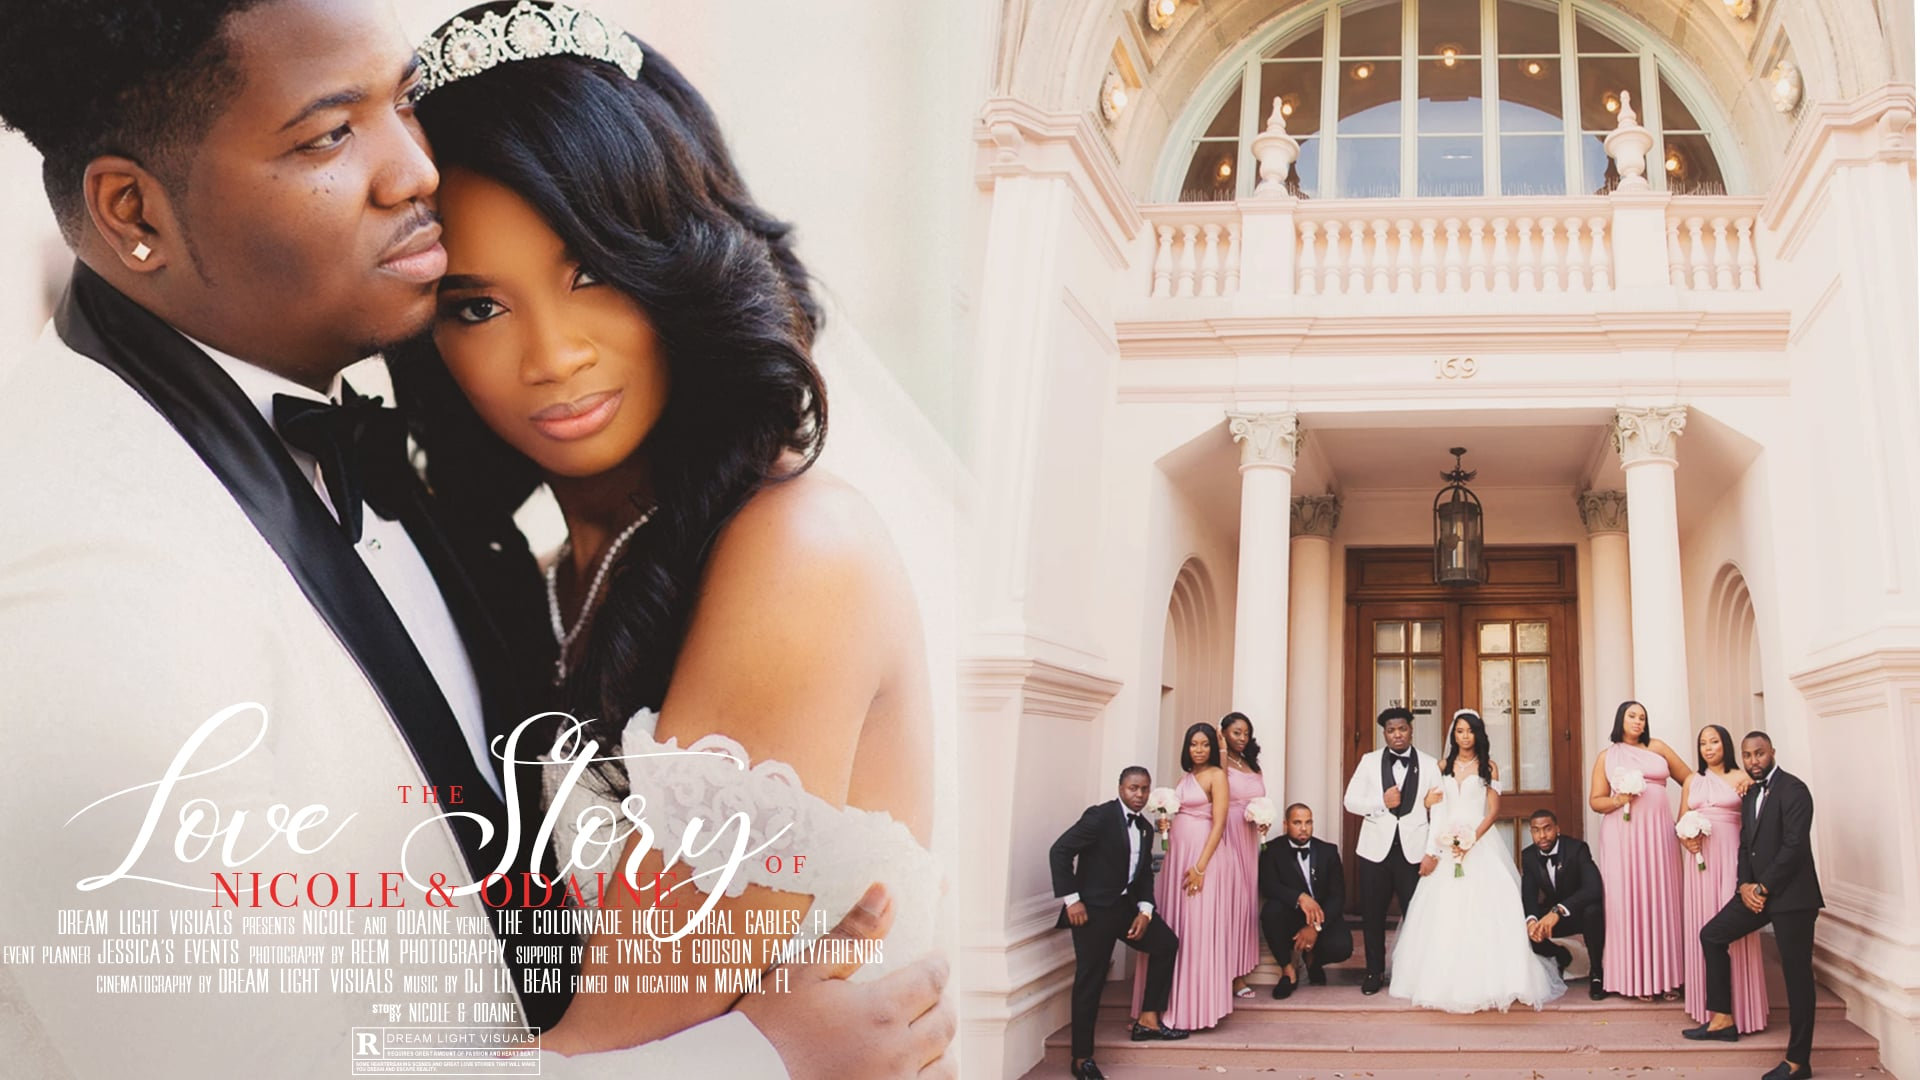 The Love Story of Nicole & Odaine | Colonnade Hotel in Coral Gables, FL